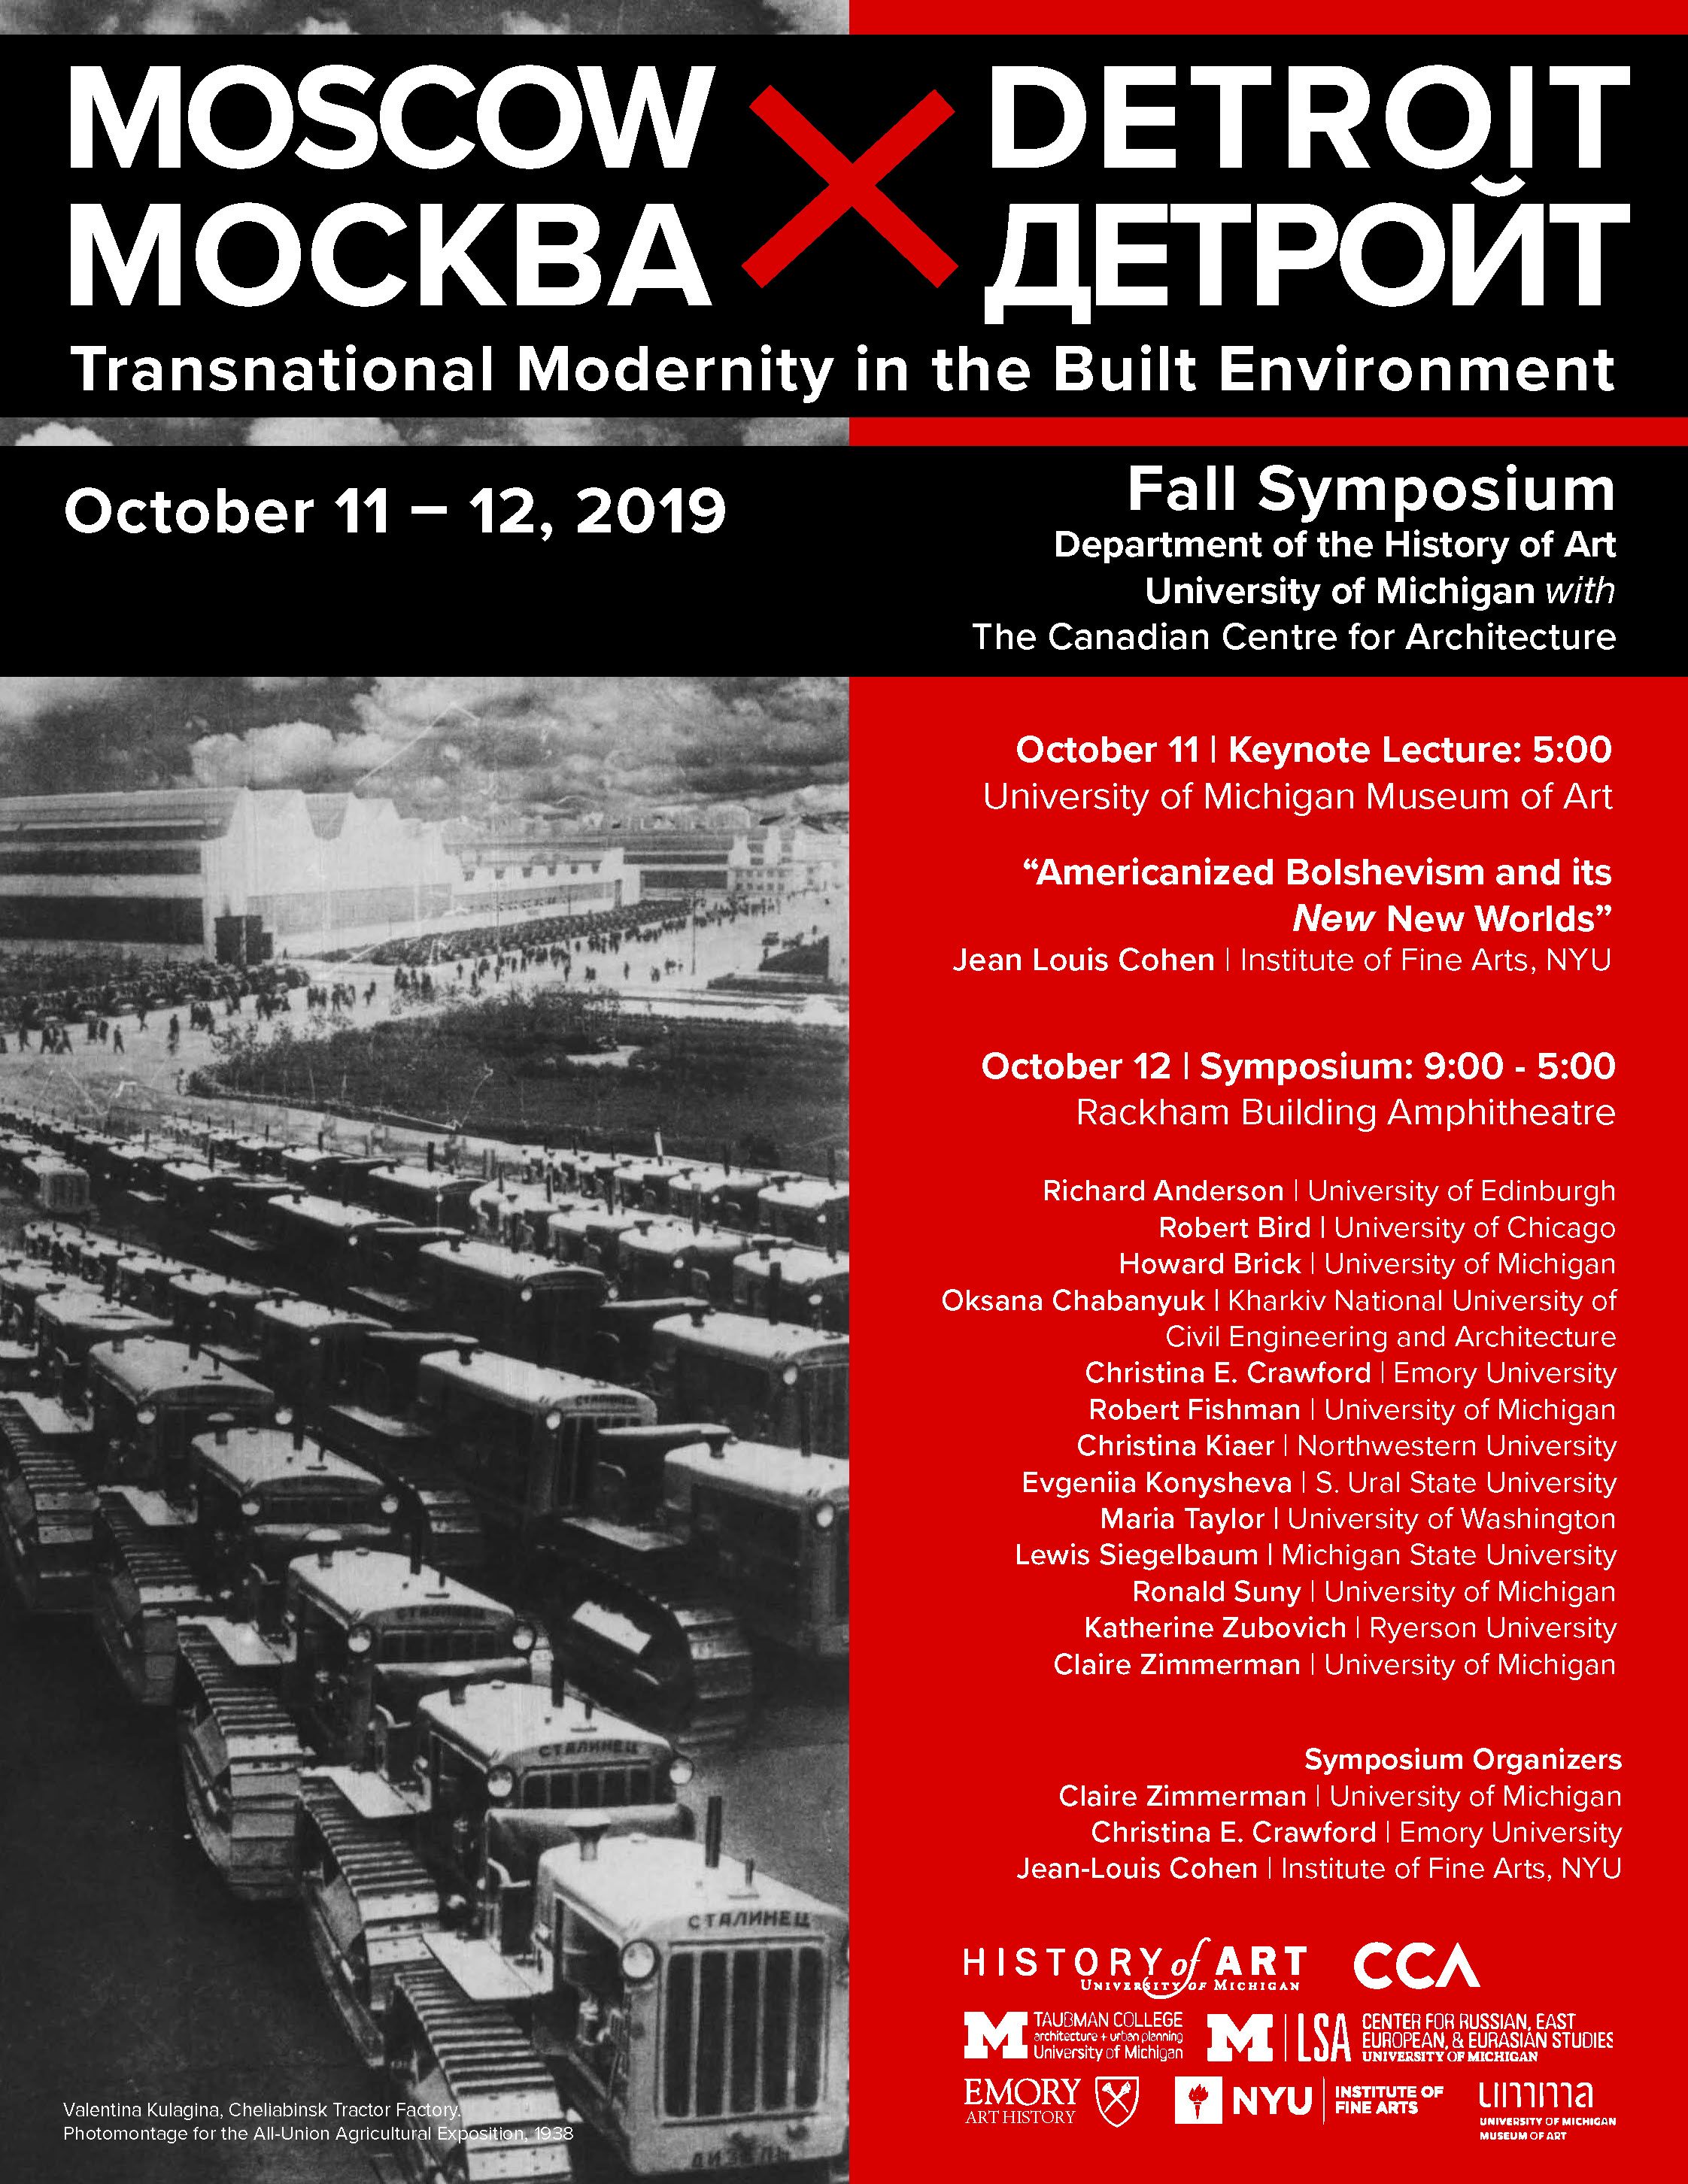 MOSCOW X DETROIT symposium  will be held October 11-12, 2019 at the University of Michigan    Poster design: Christina E. Crawford